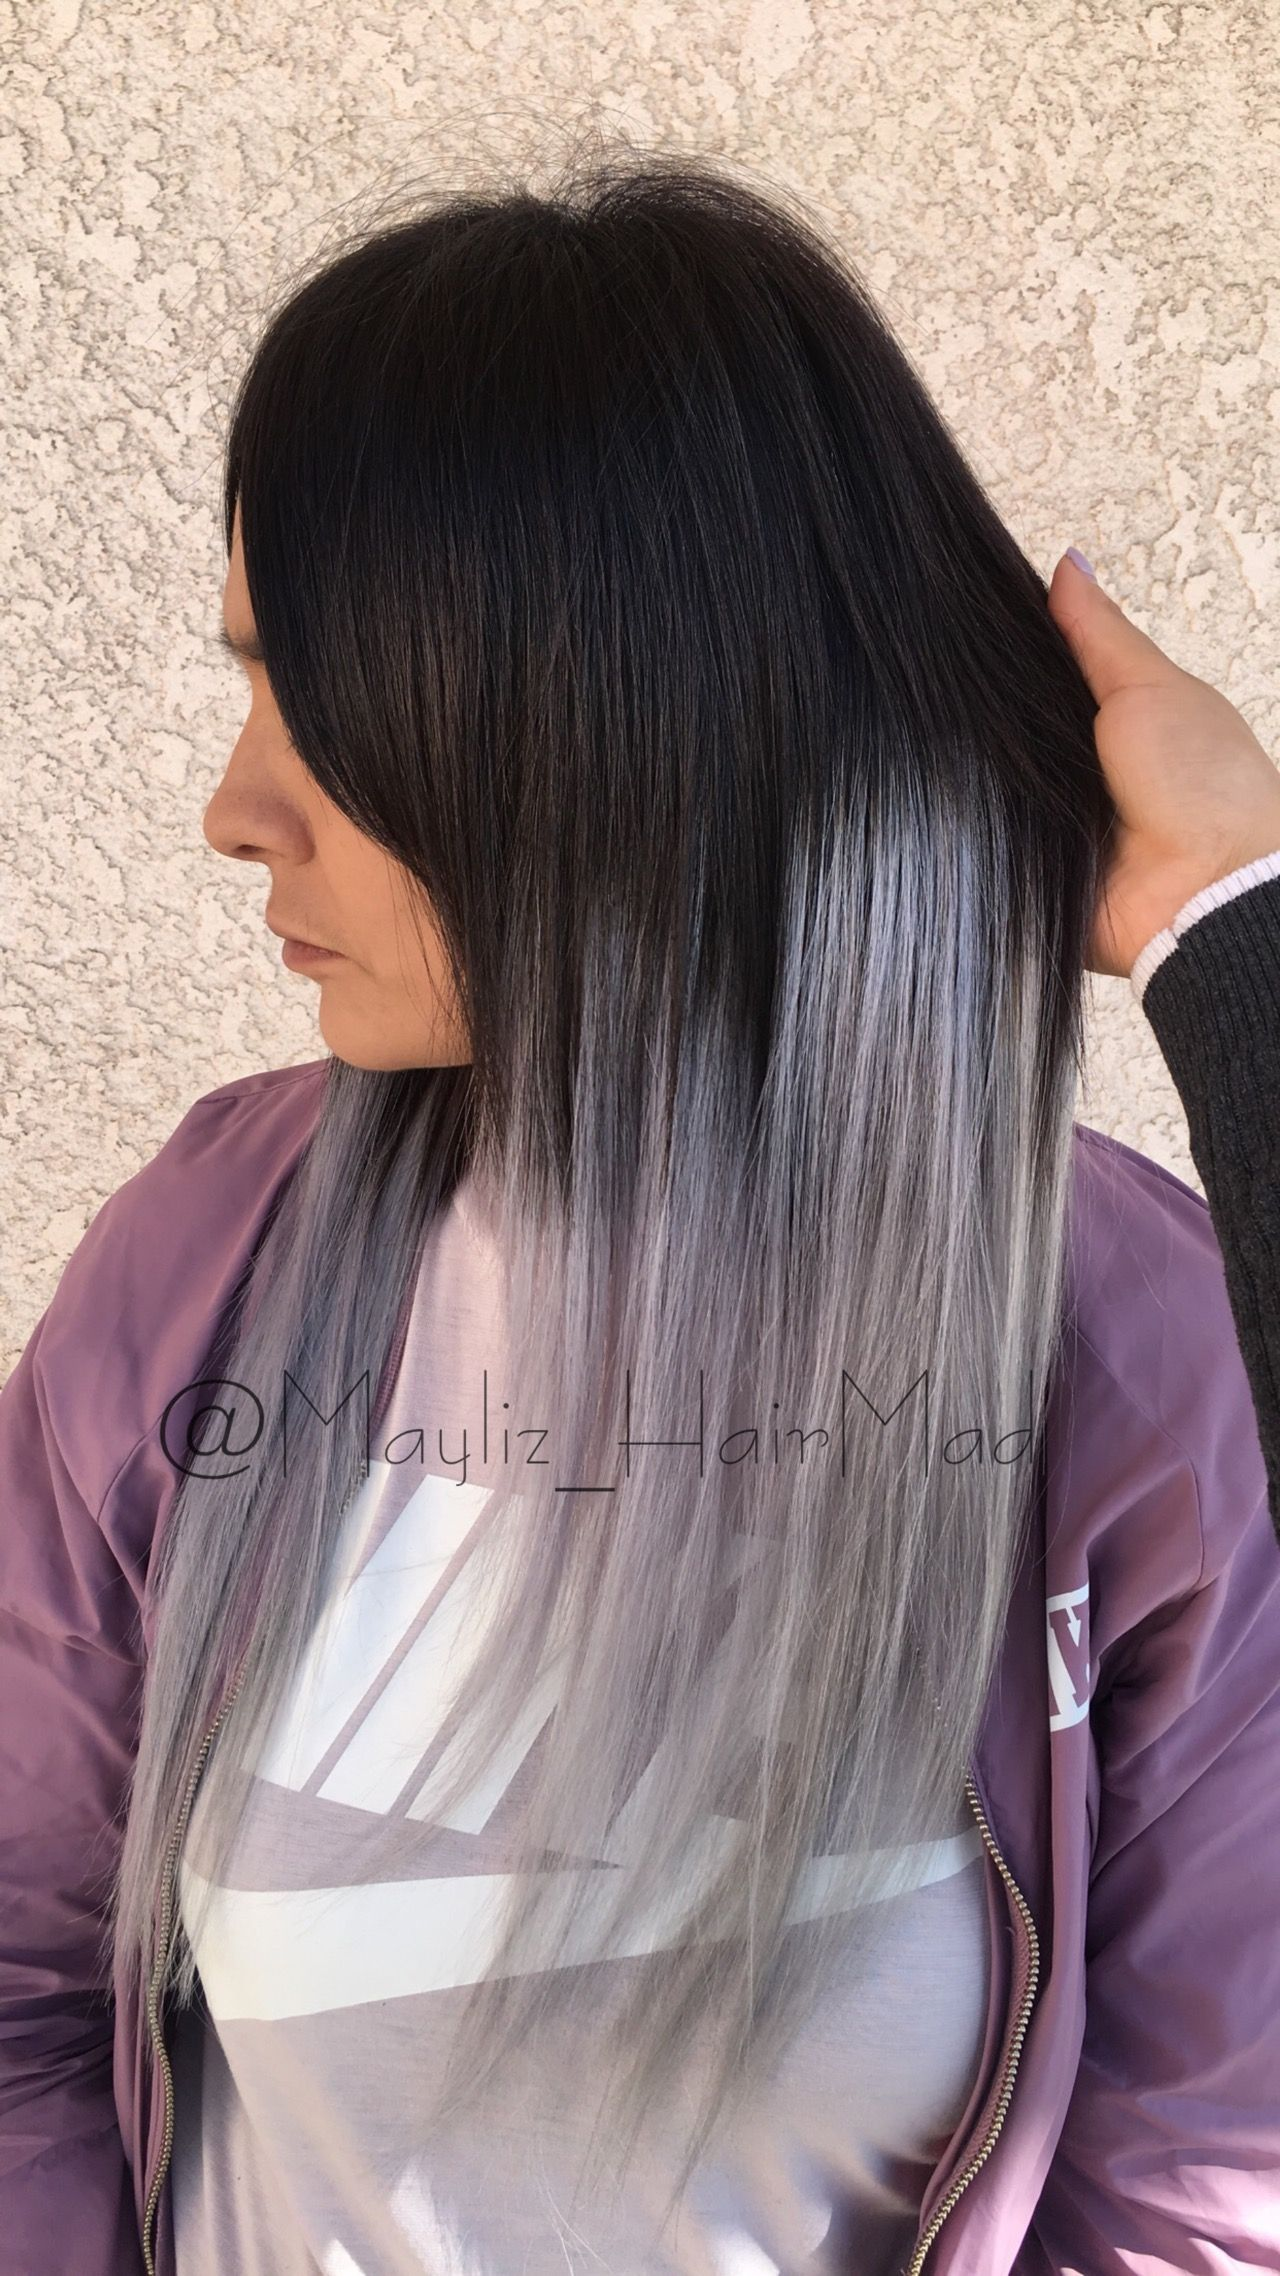 Silver Ombr Tape In Hair Extensions From Babe Hair Extensions